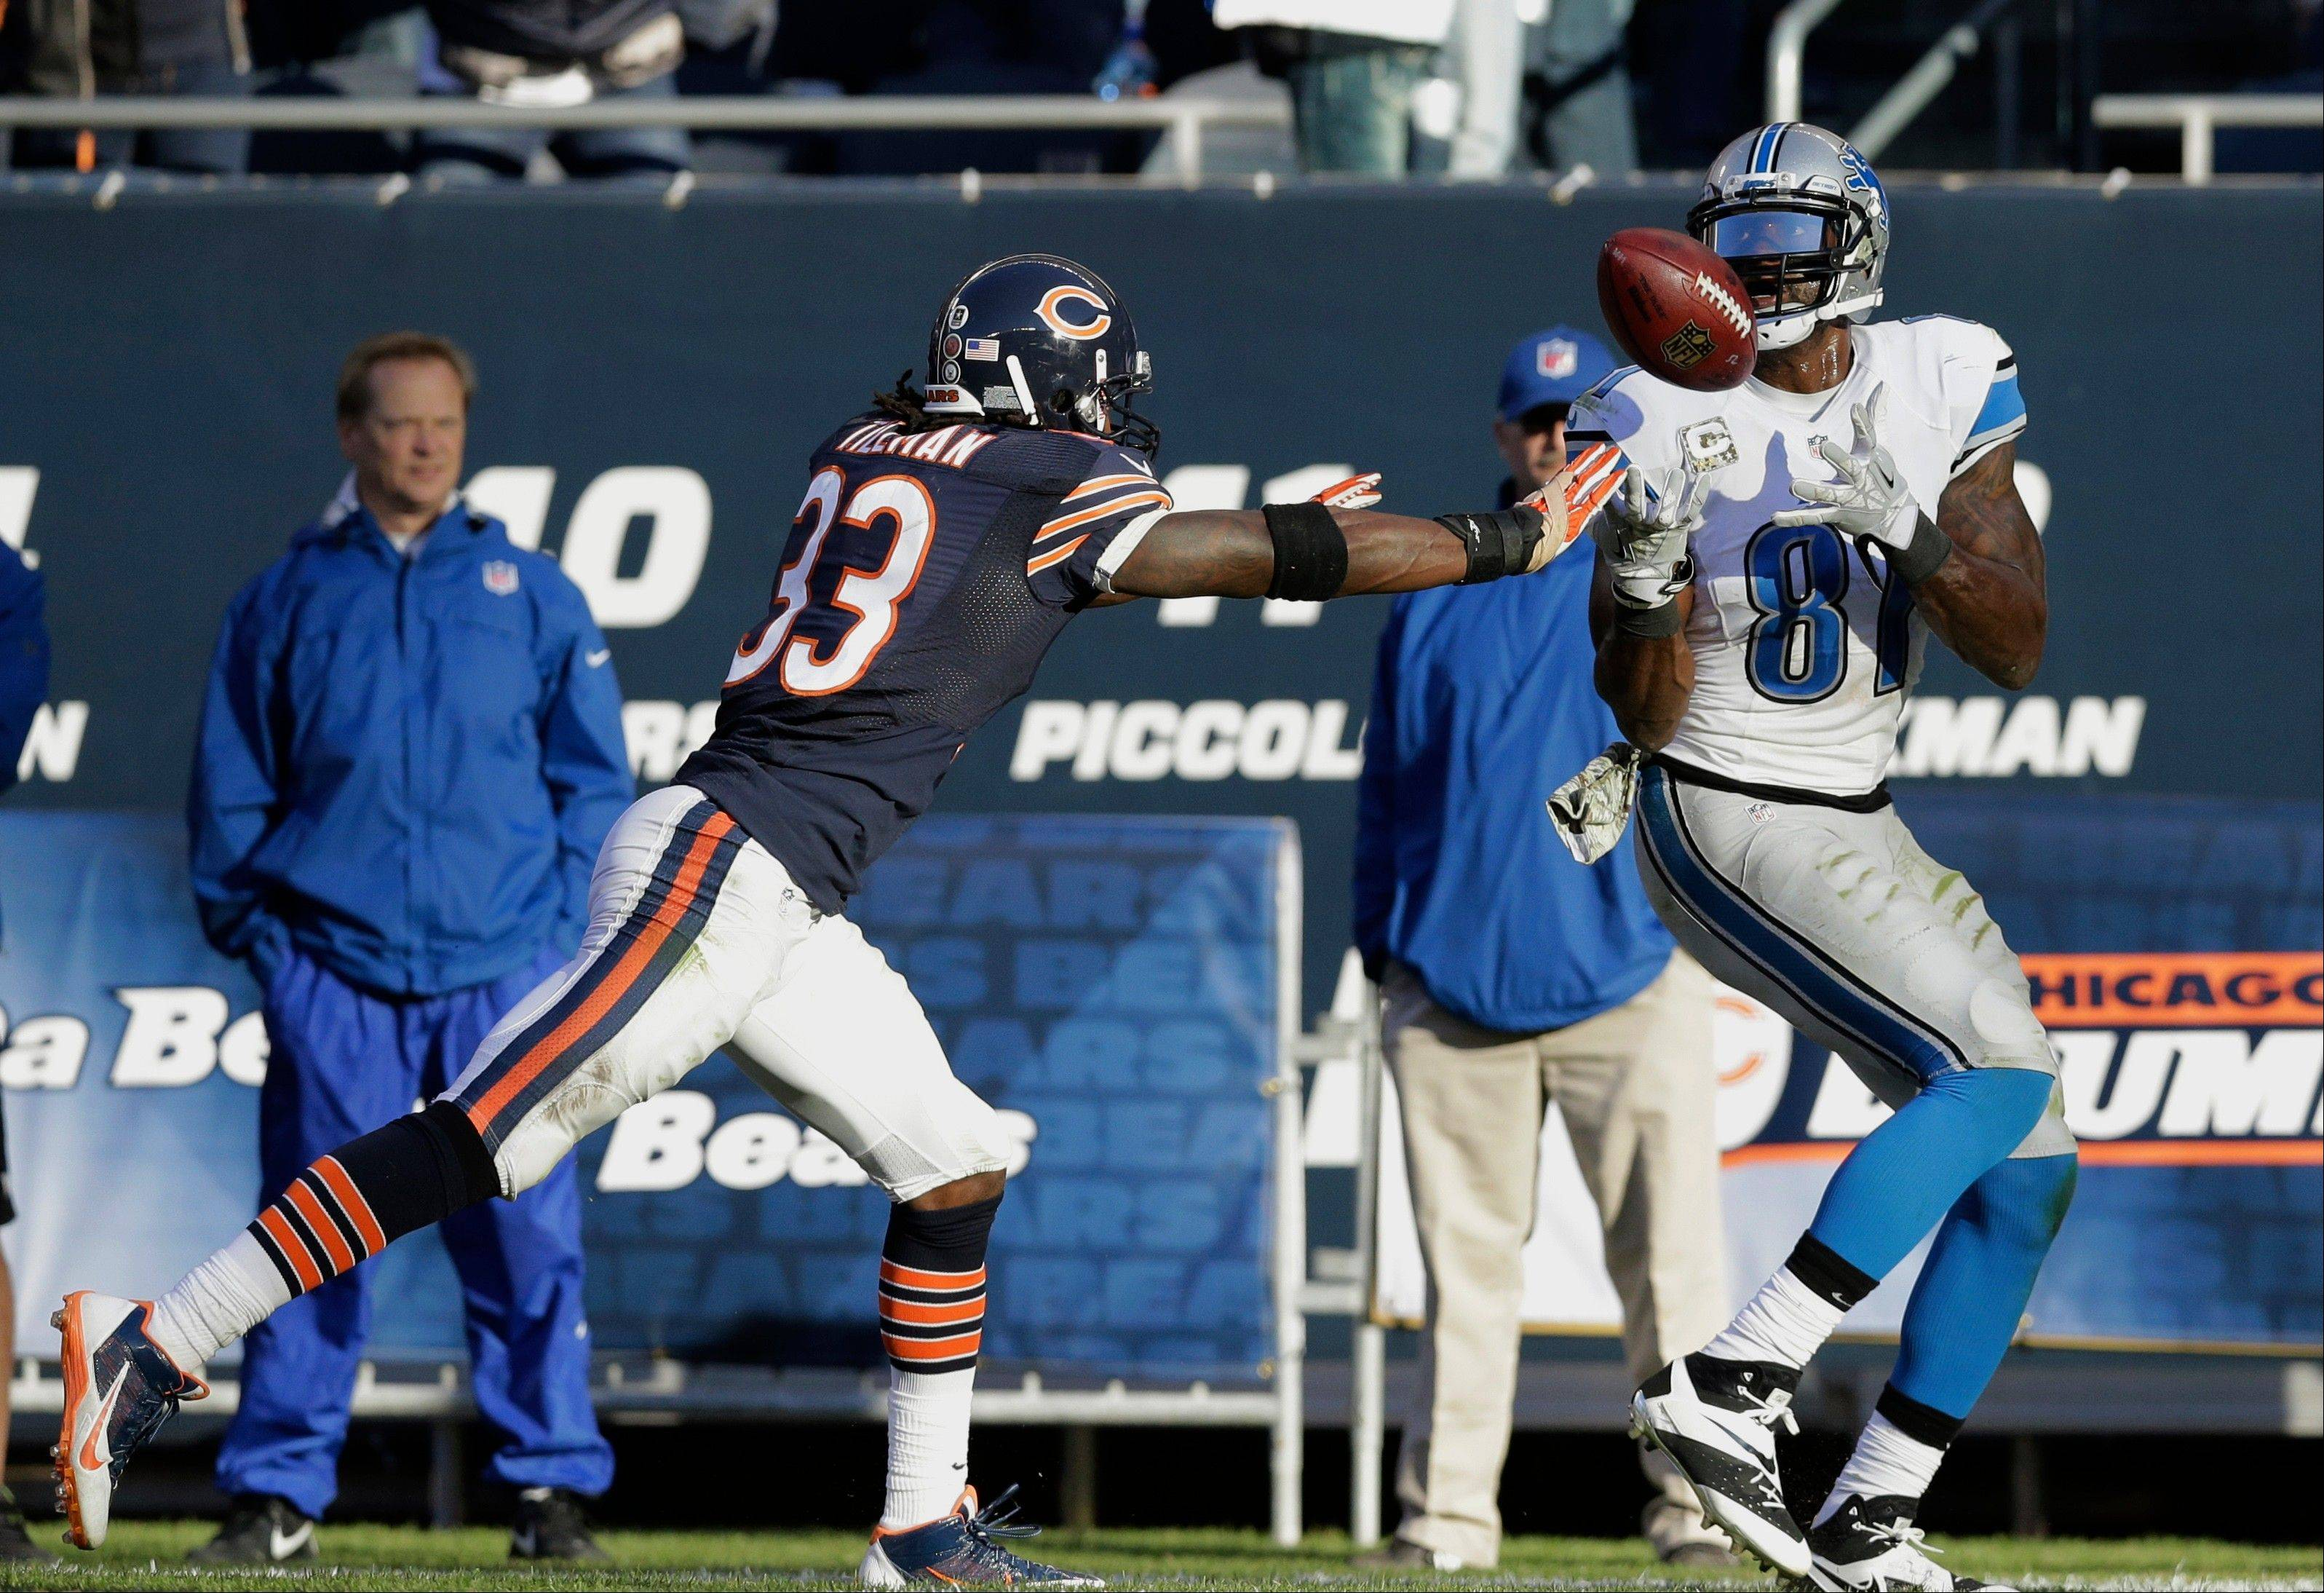 Detroit Lions wide receiver Calvin Johnson (81) makes a touchdown reception against Chicago Bears cornerback Charles Tillman (33) during the second half of an NFL football game, Sunday, Nov. 10, 2013, in Chicago.